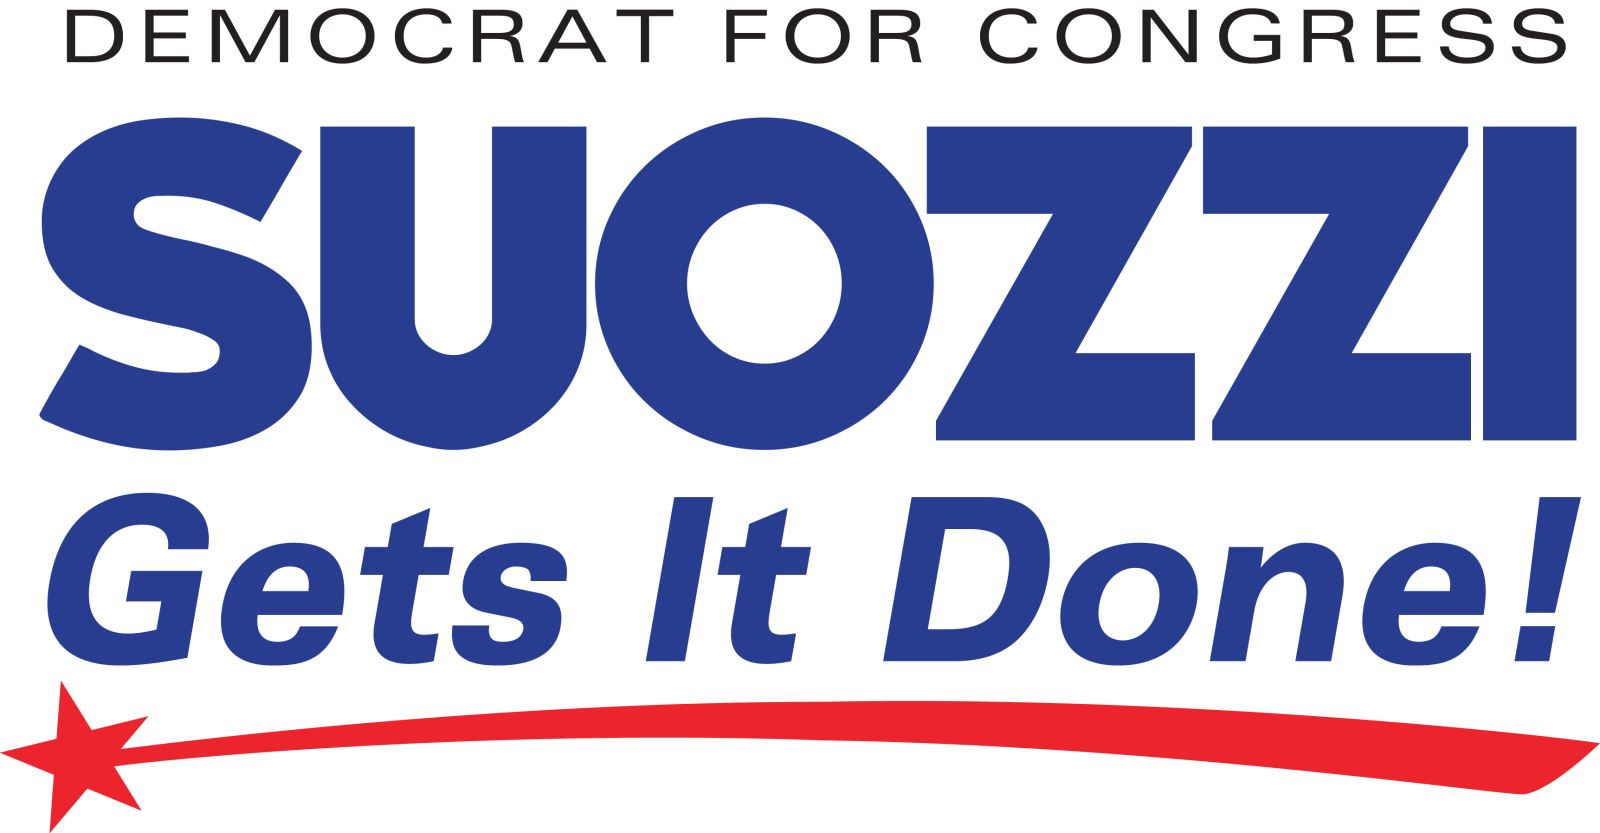 Suozzi for Congress